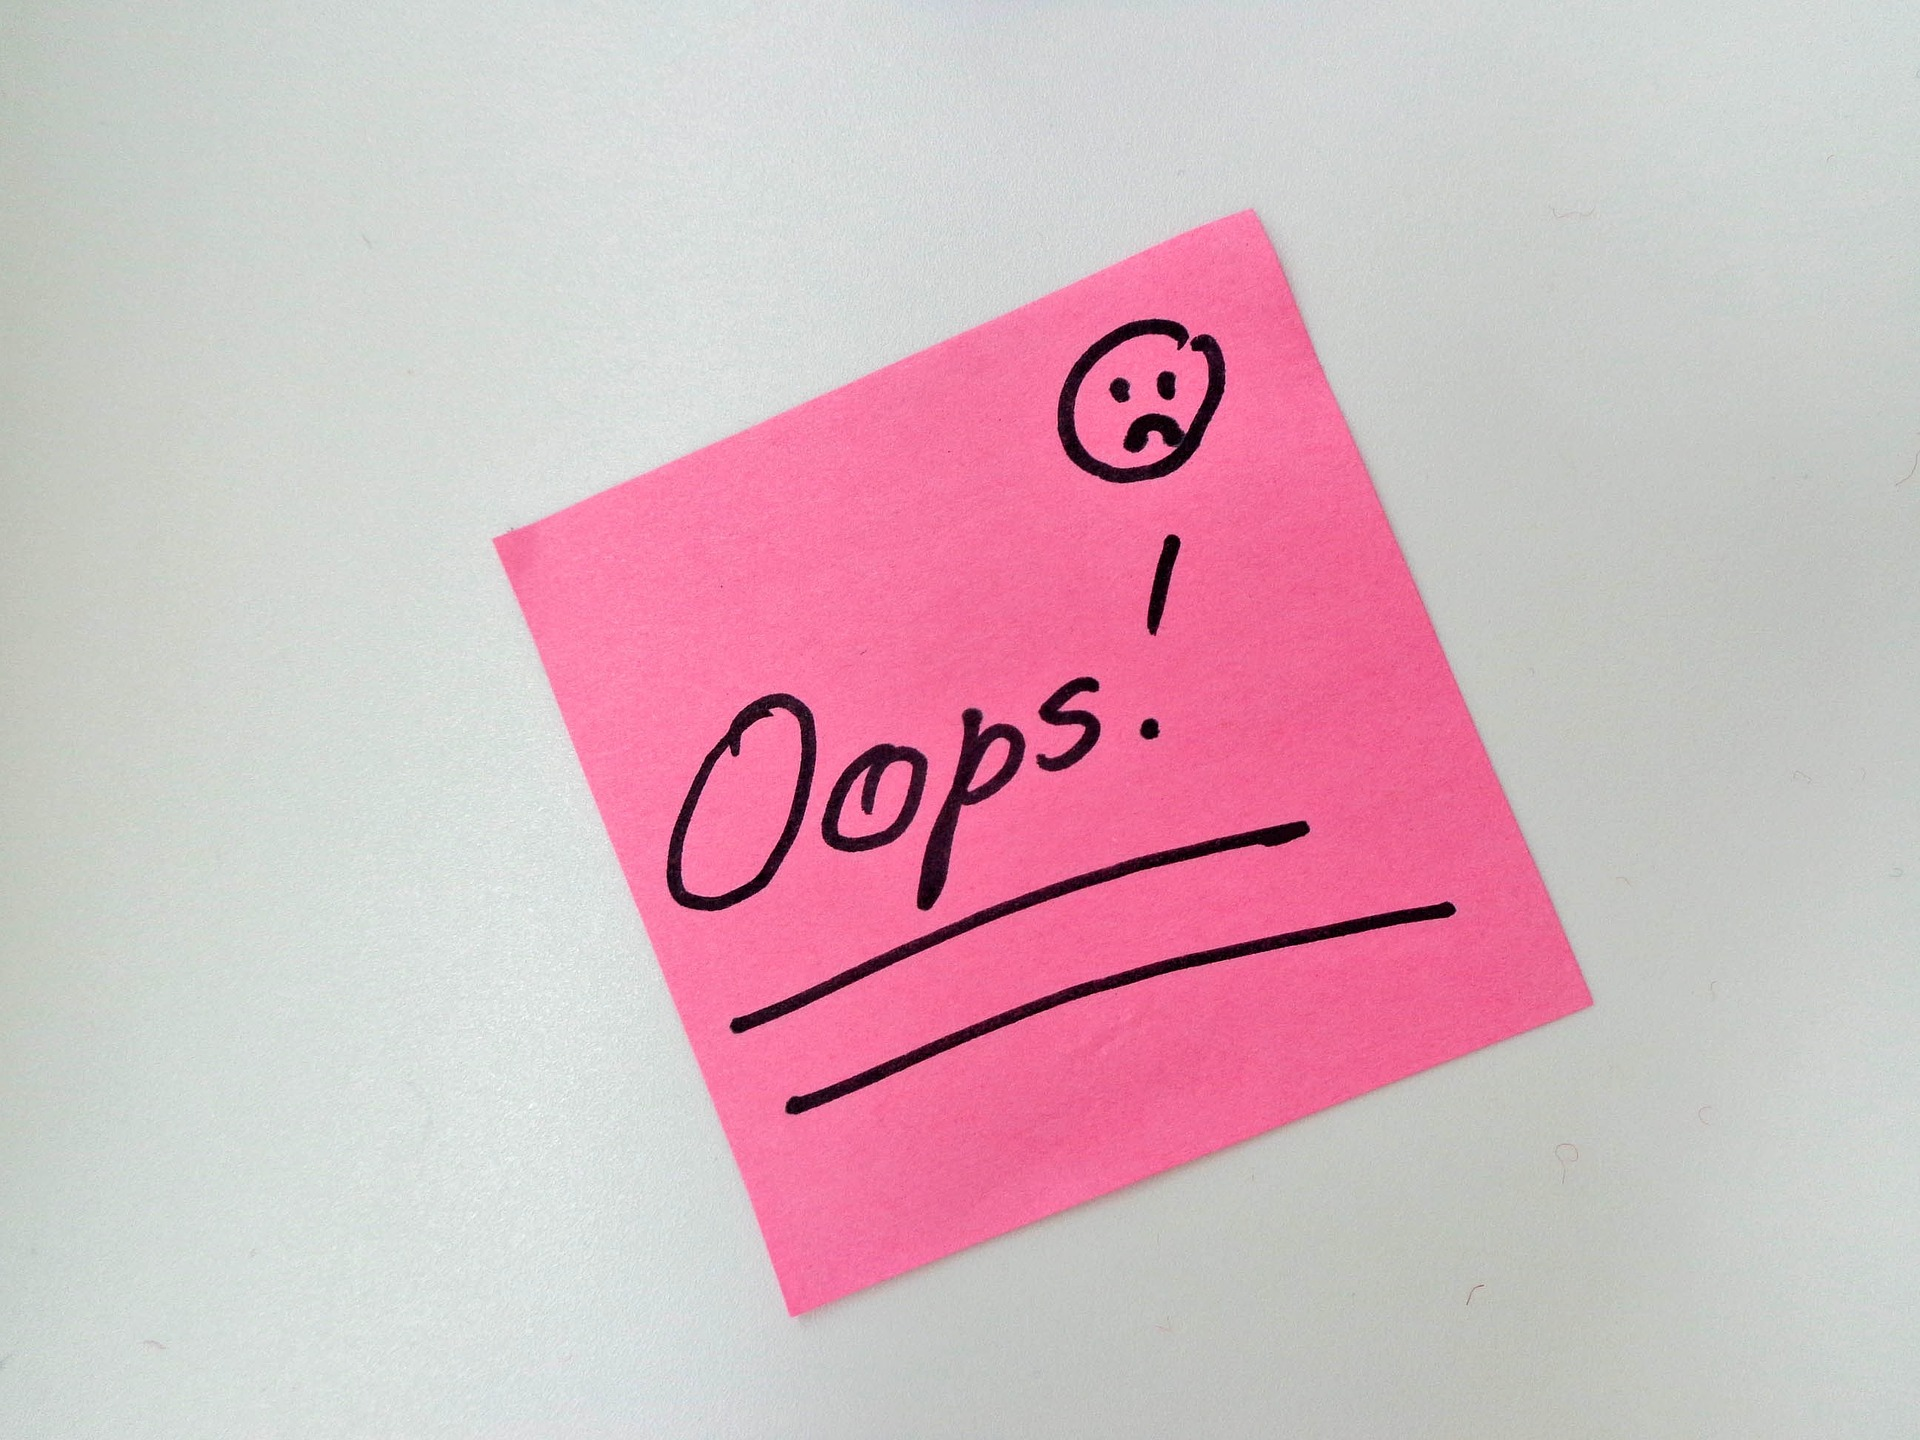 Dev-Oops: Why DevOps efforts fail